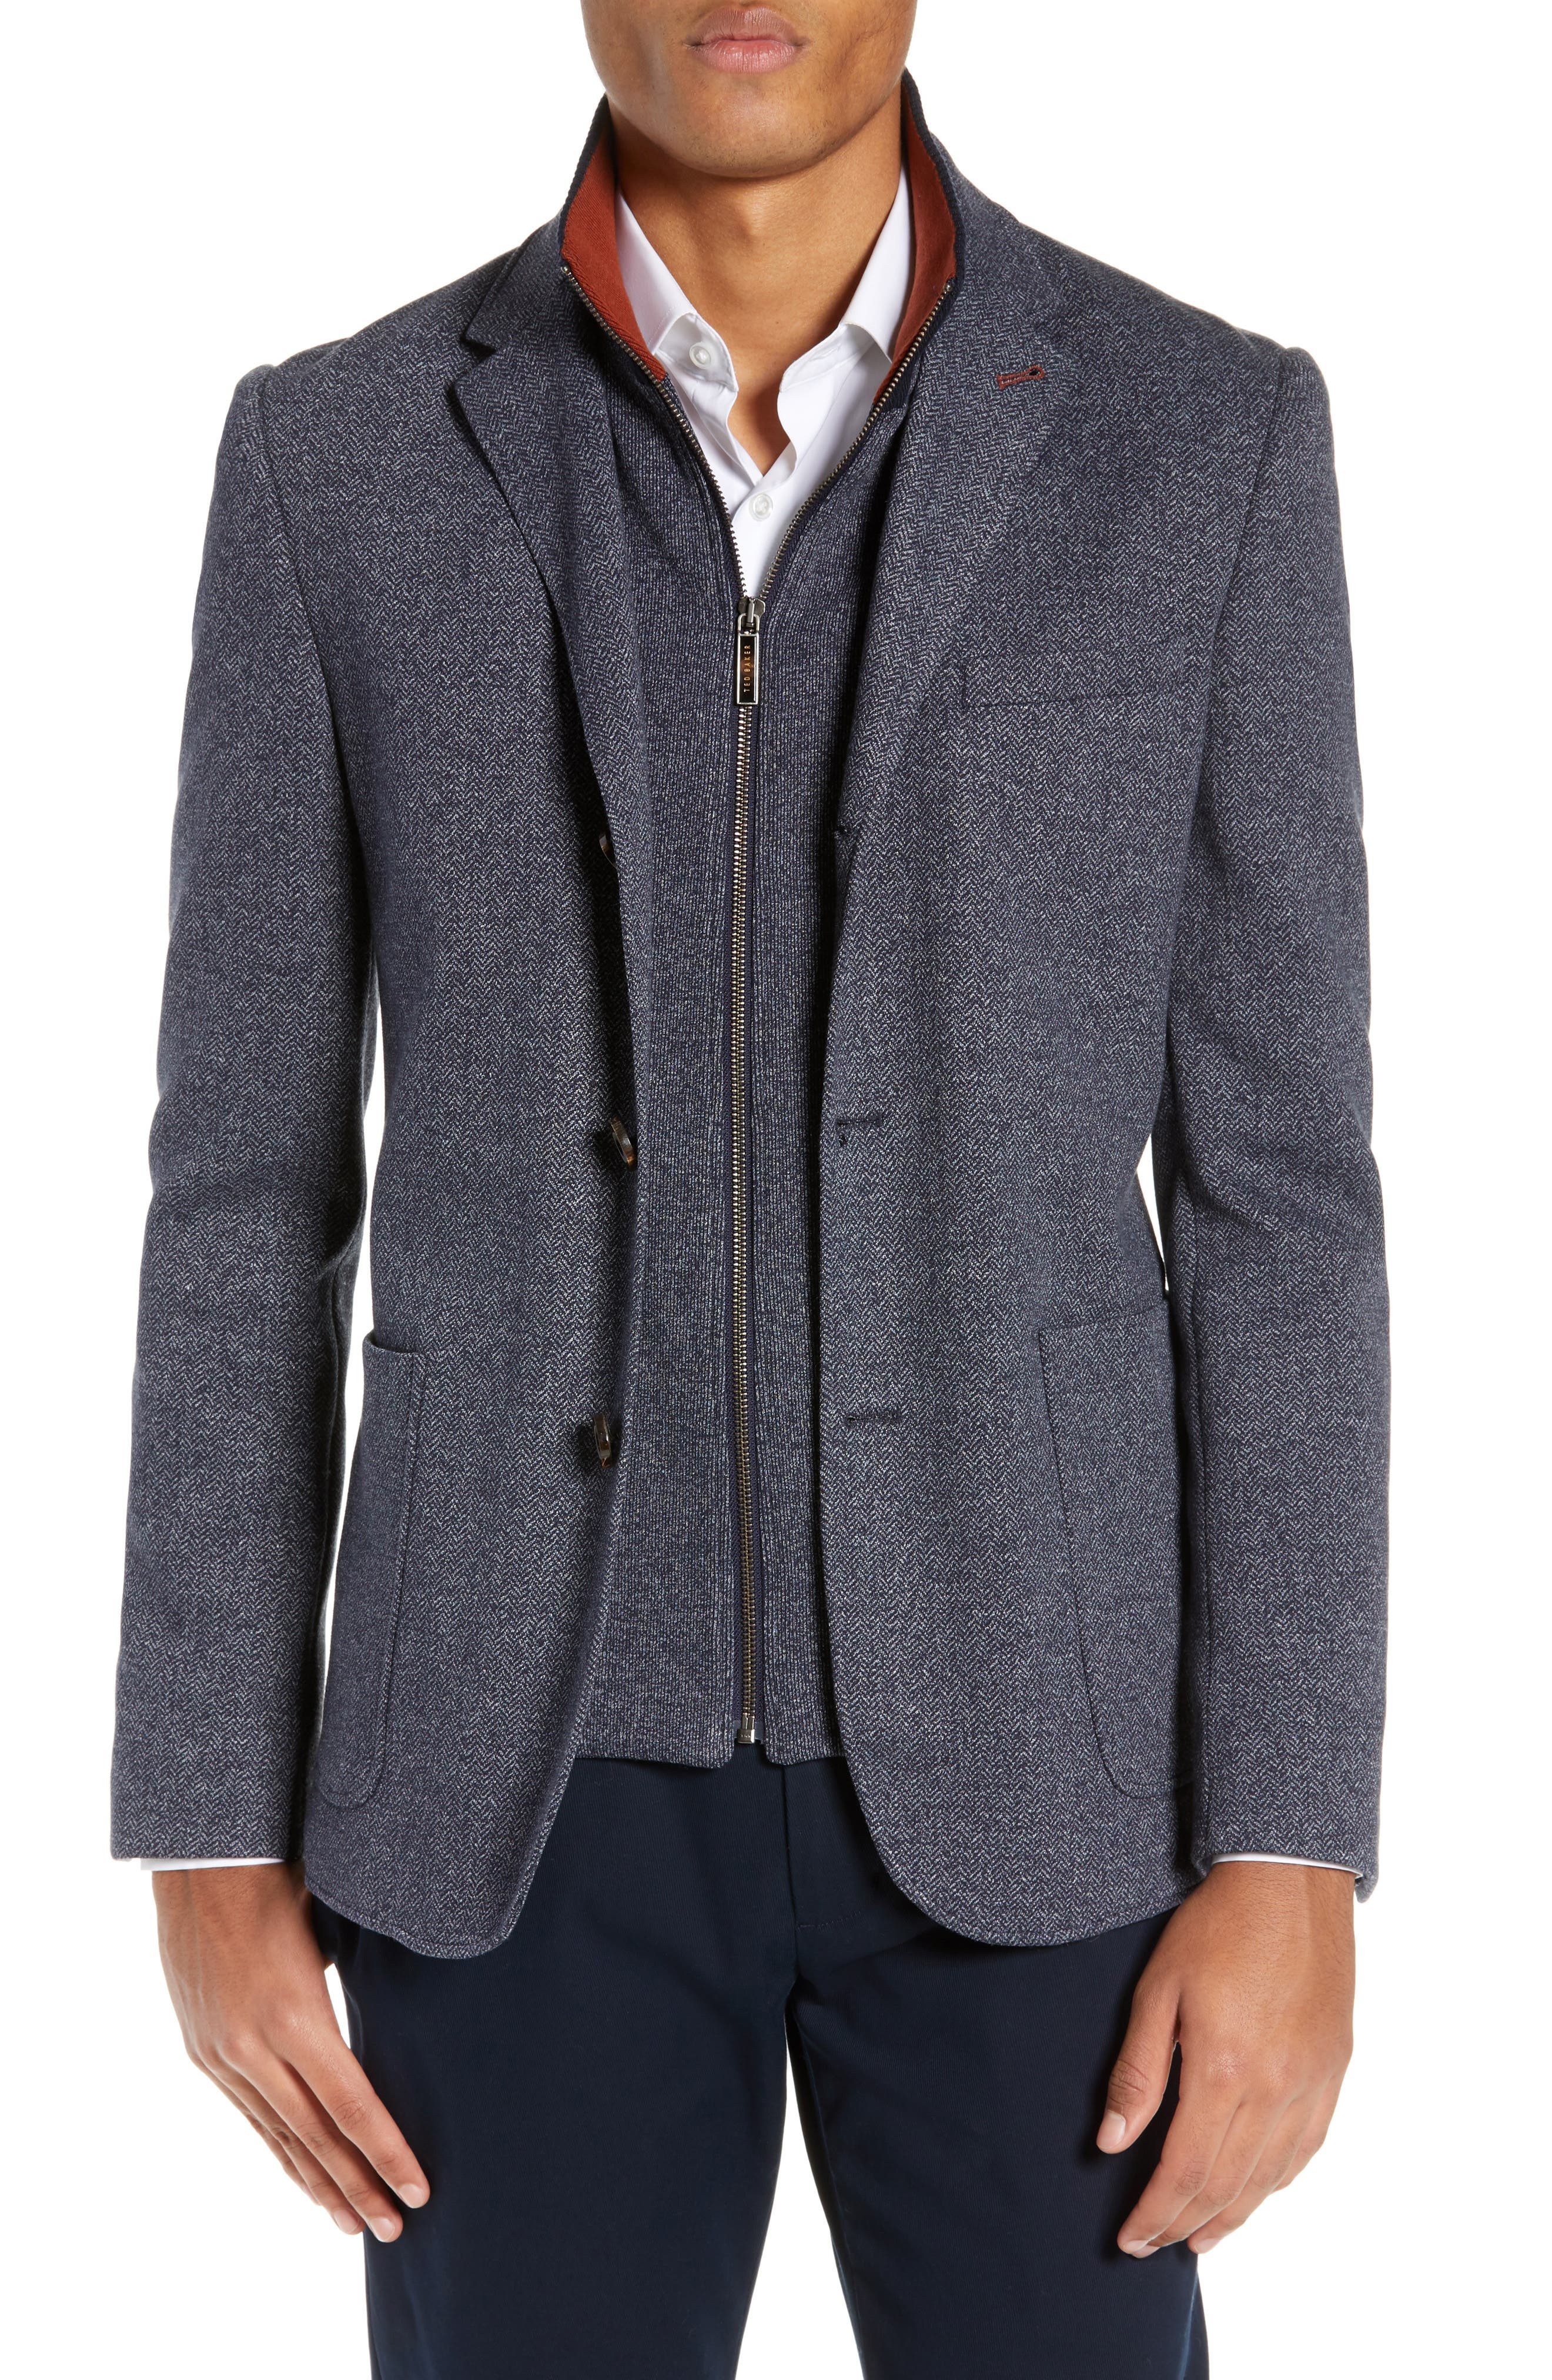 TED BAKER LONDON Cole Layered Look Herringbone Jacket, Main, color, BLUE